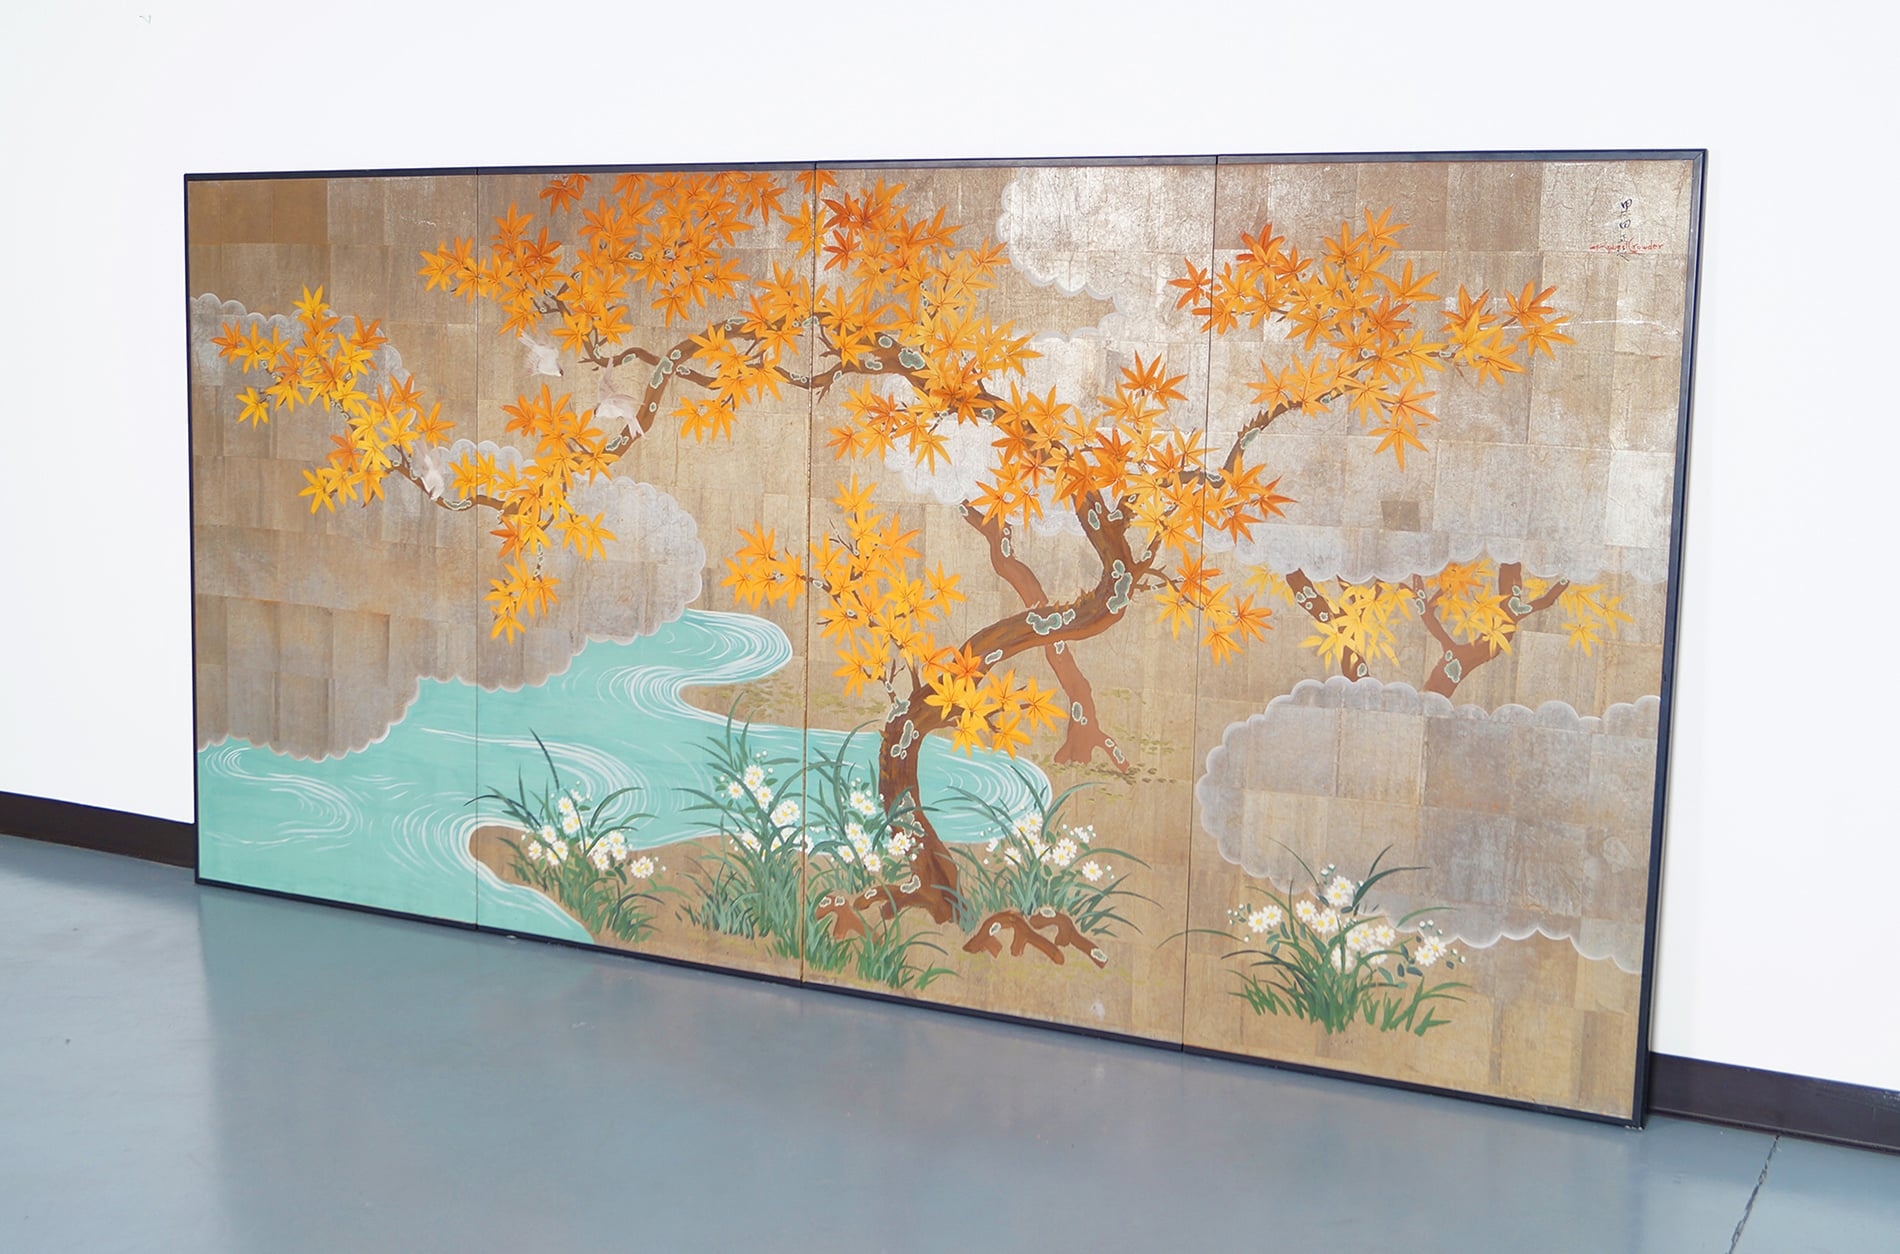 Vintage Hand Painted Screen Panels by Robert Crowder